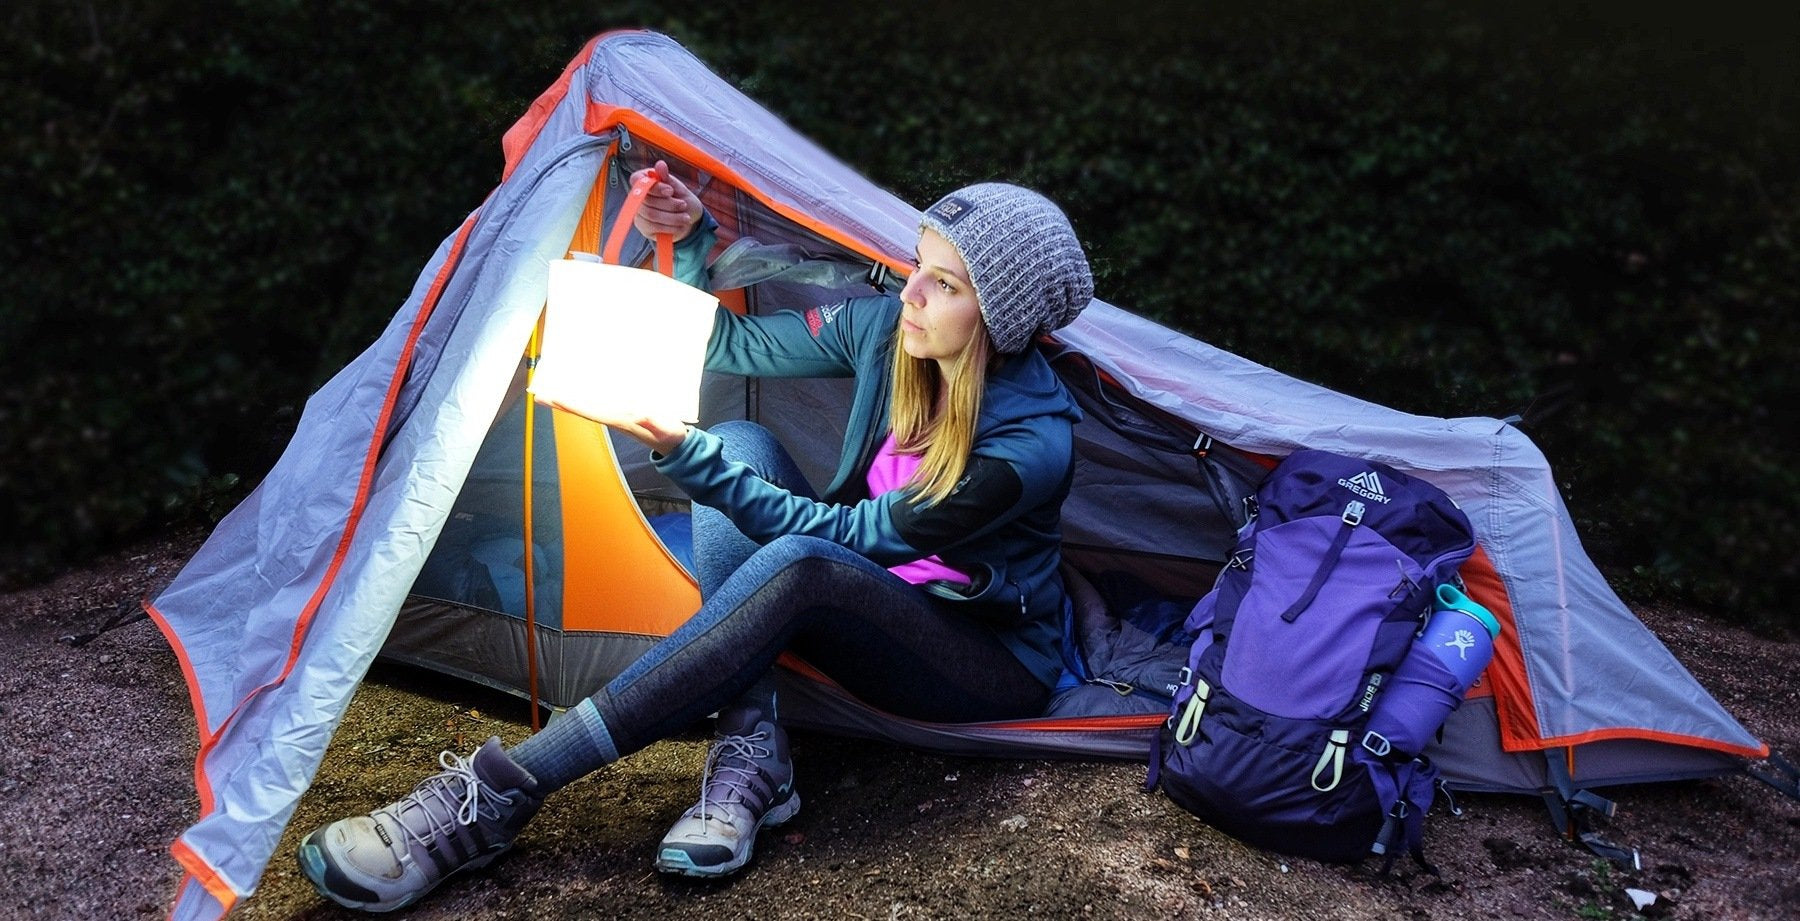 PackLite Max 2-in-1 Phone Charger Named Best Lantern for Backpacking by REI.com-LuminAID